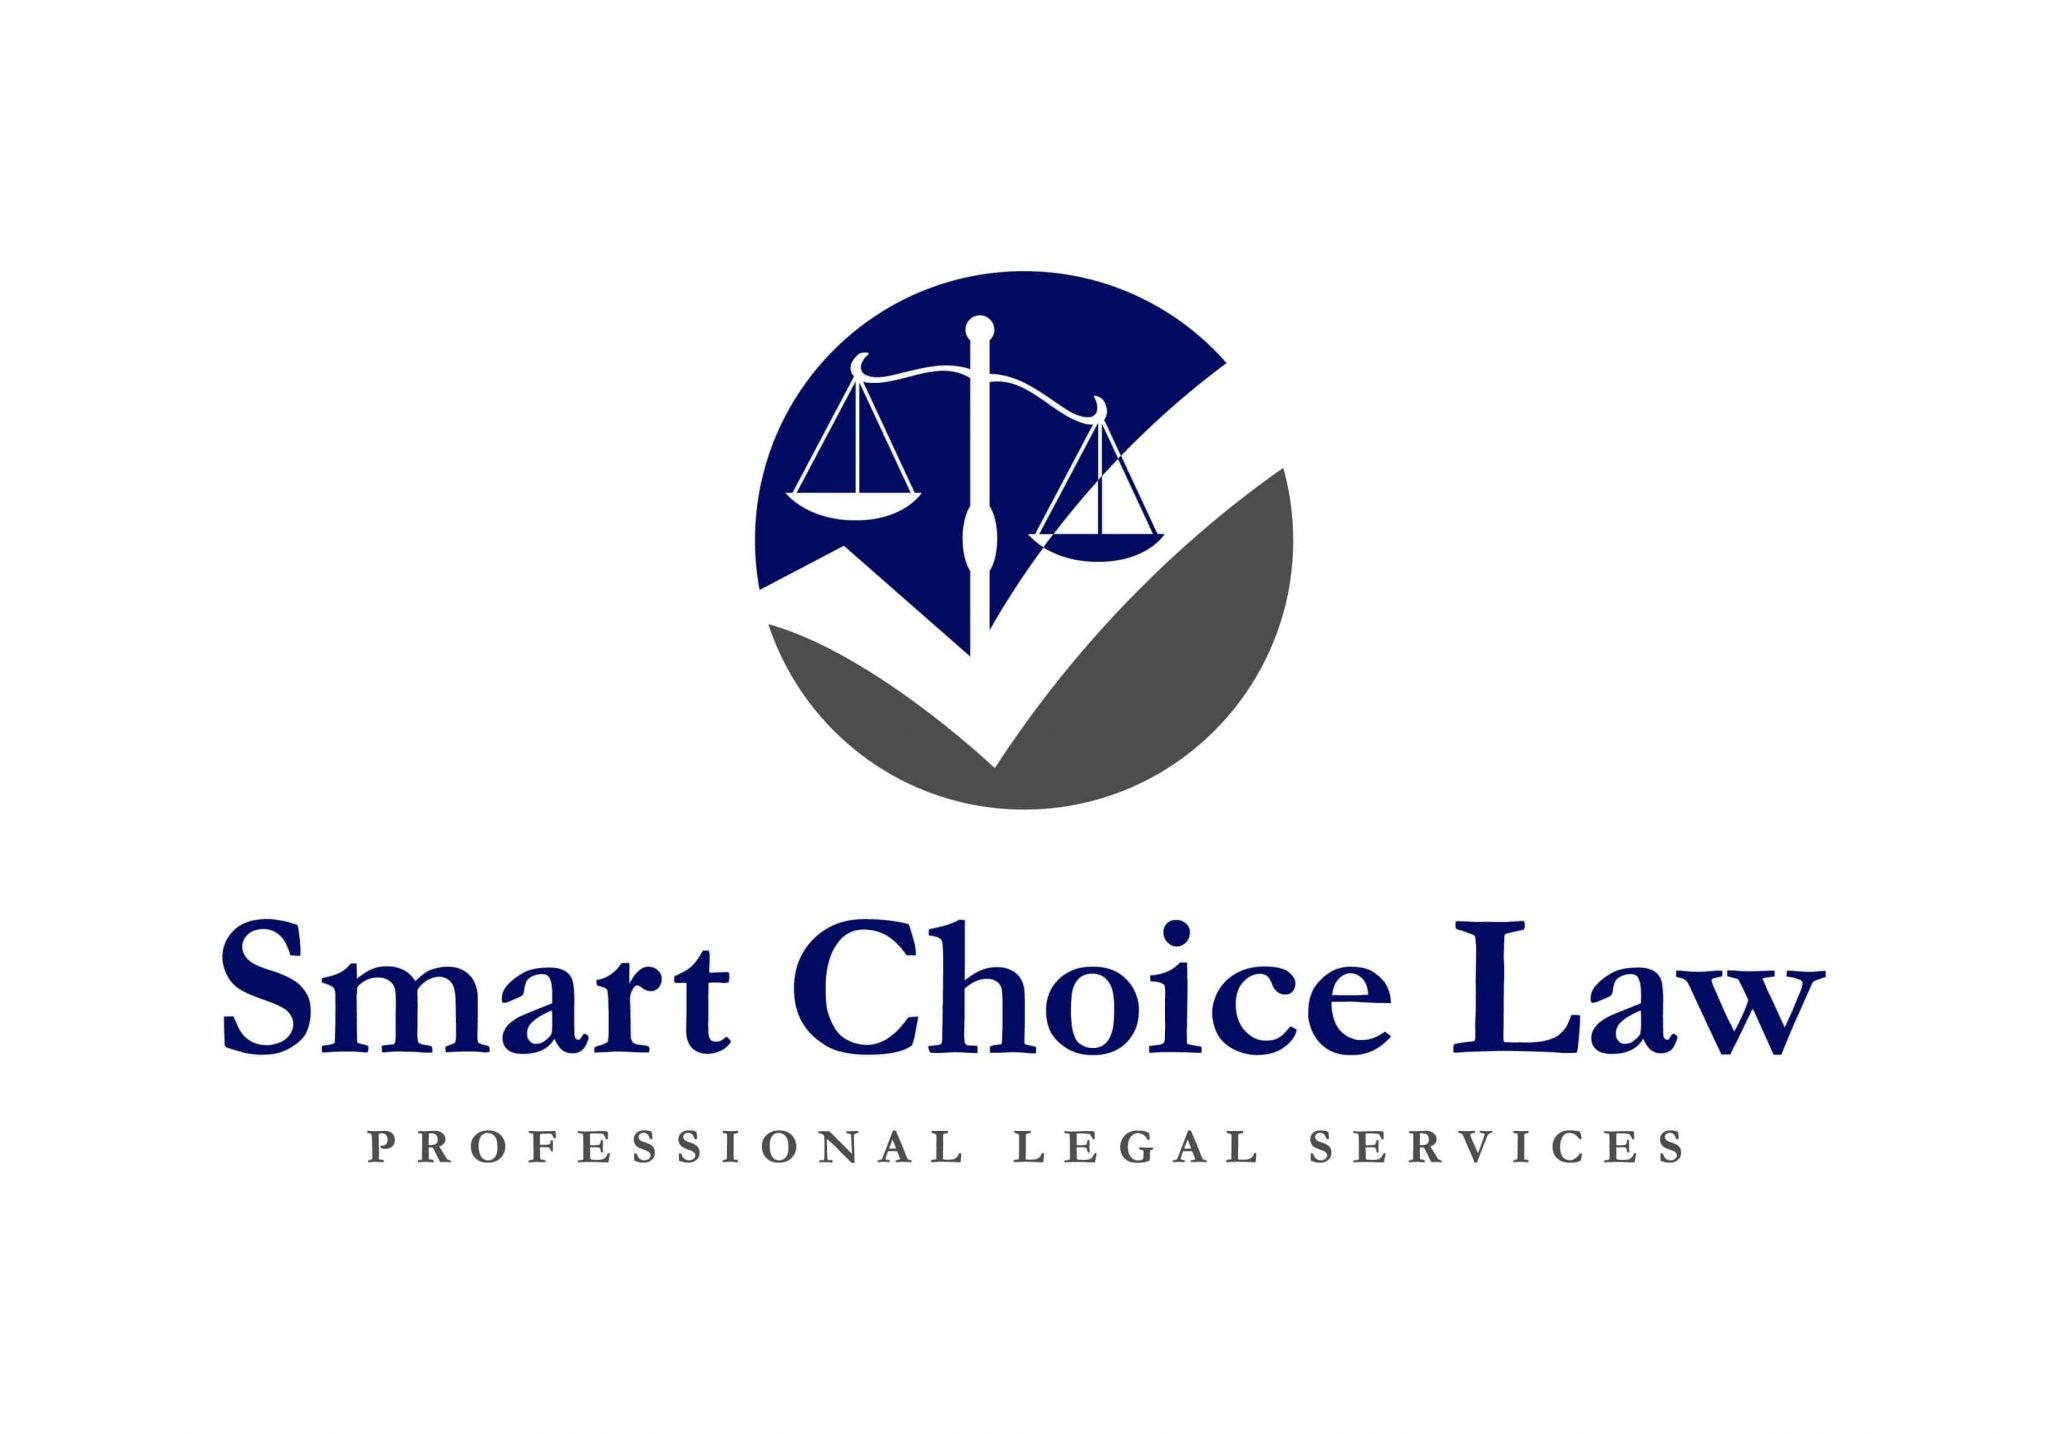 Smart Choice Law